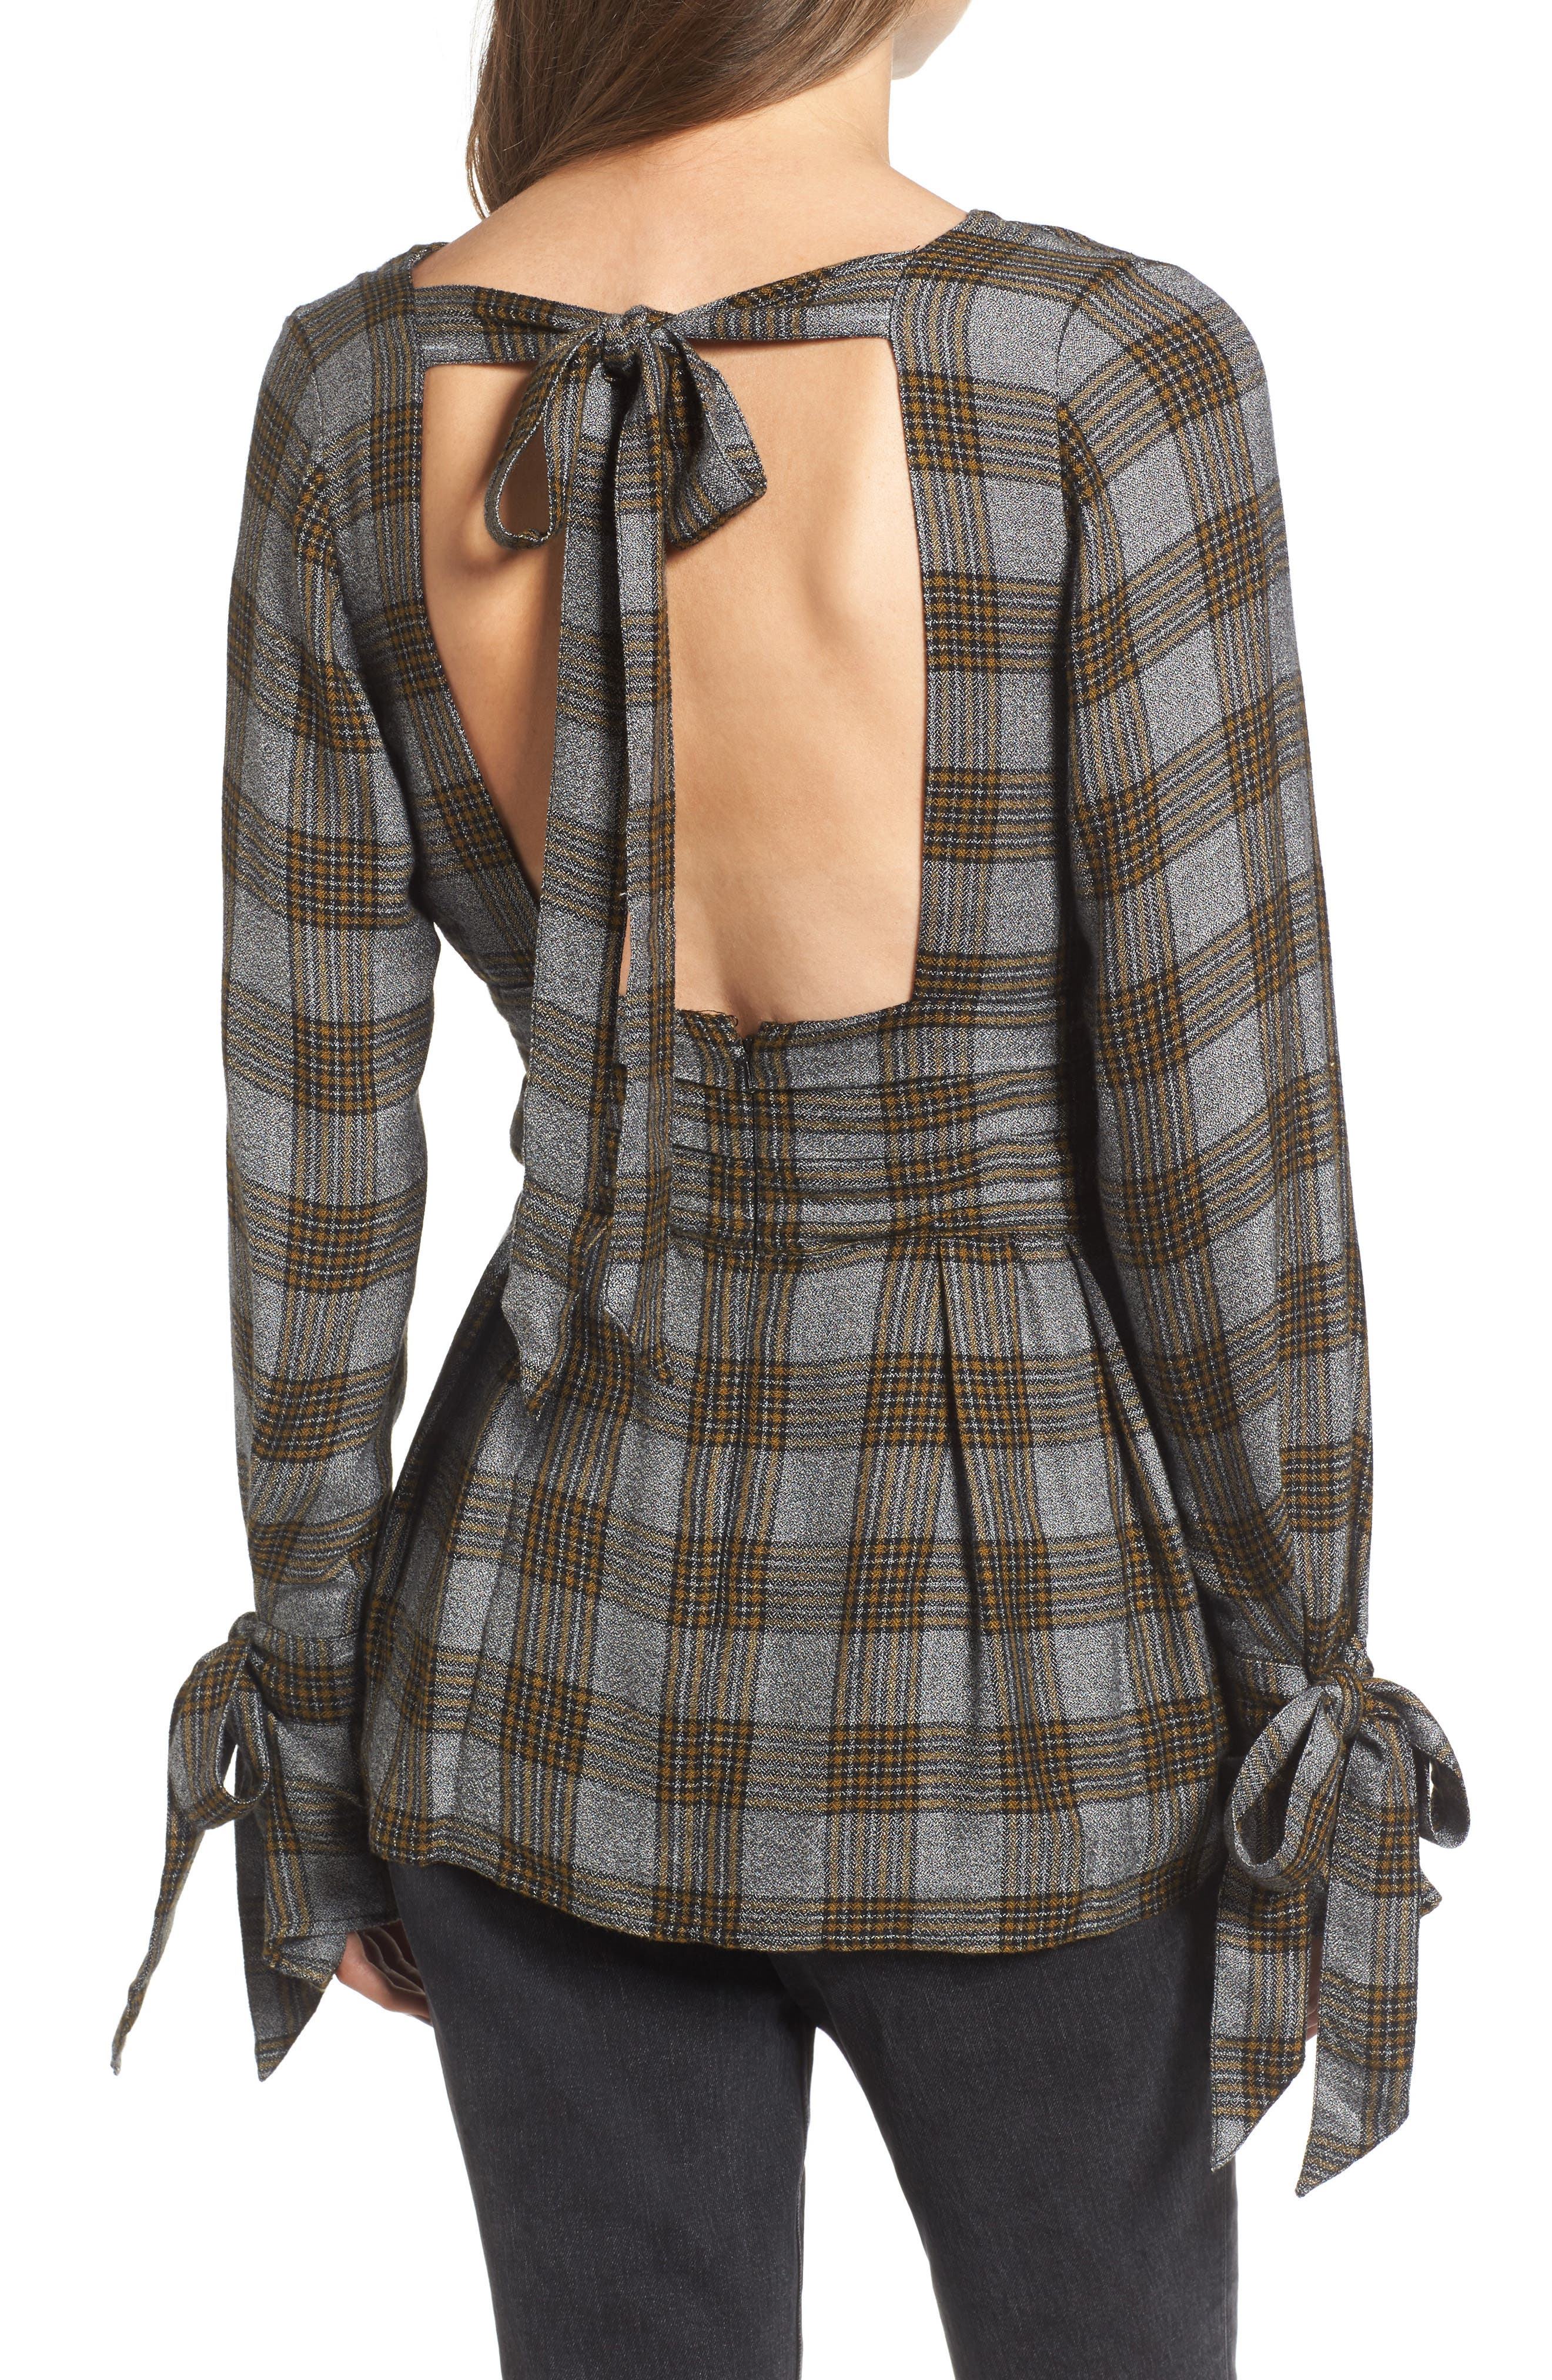 x Something Navy Tie Sleeve Top,                             Alternate thumbnail 3, color,                             Olive Breen Check